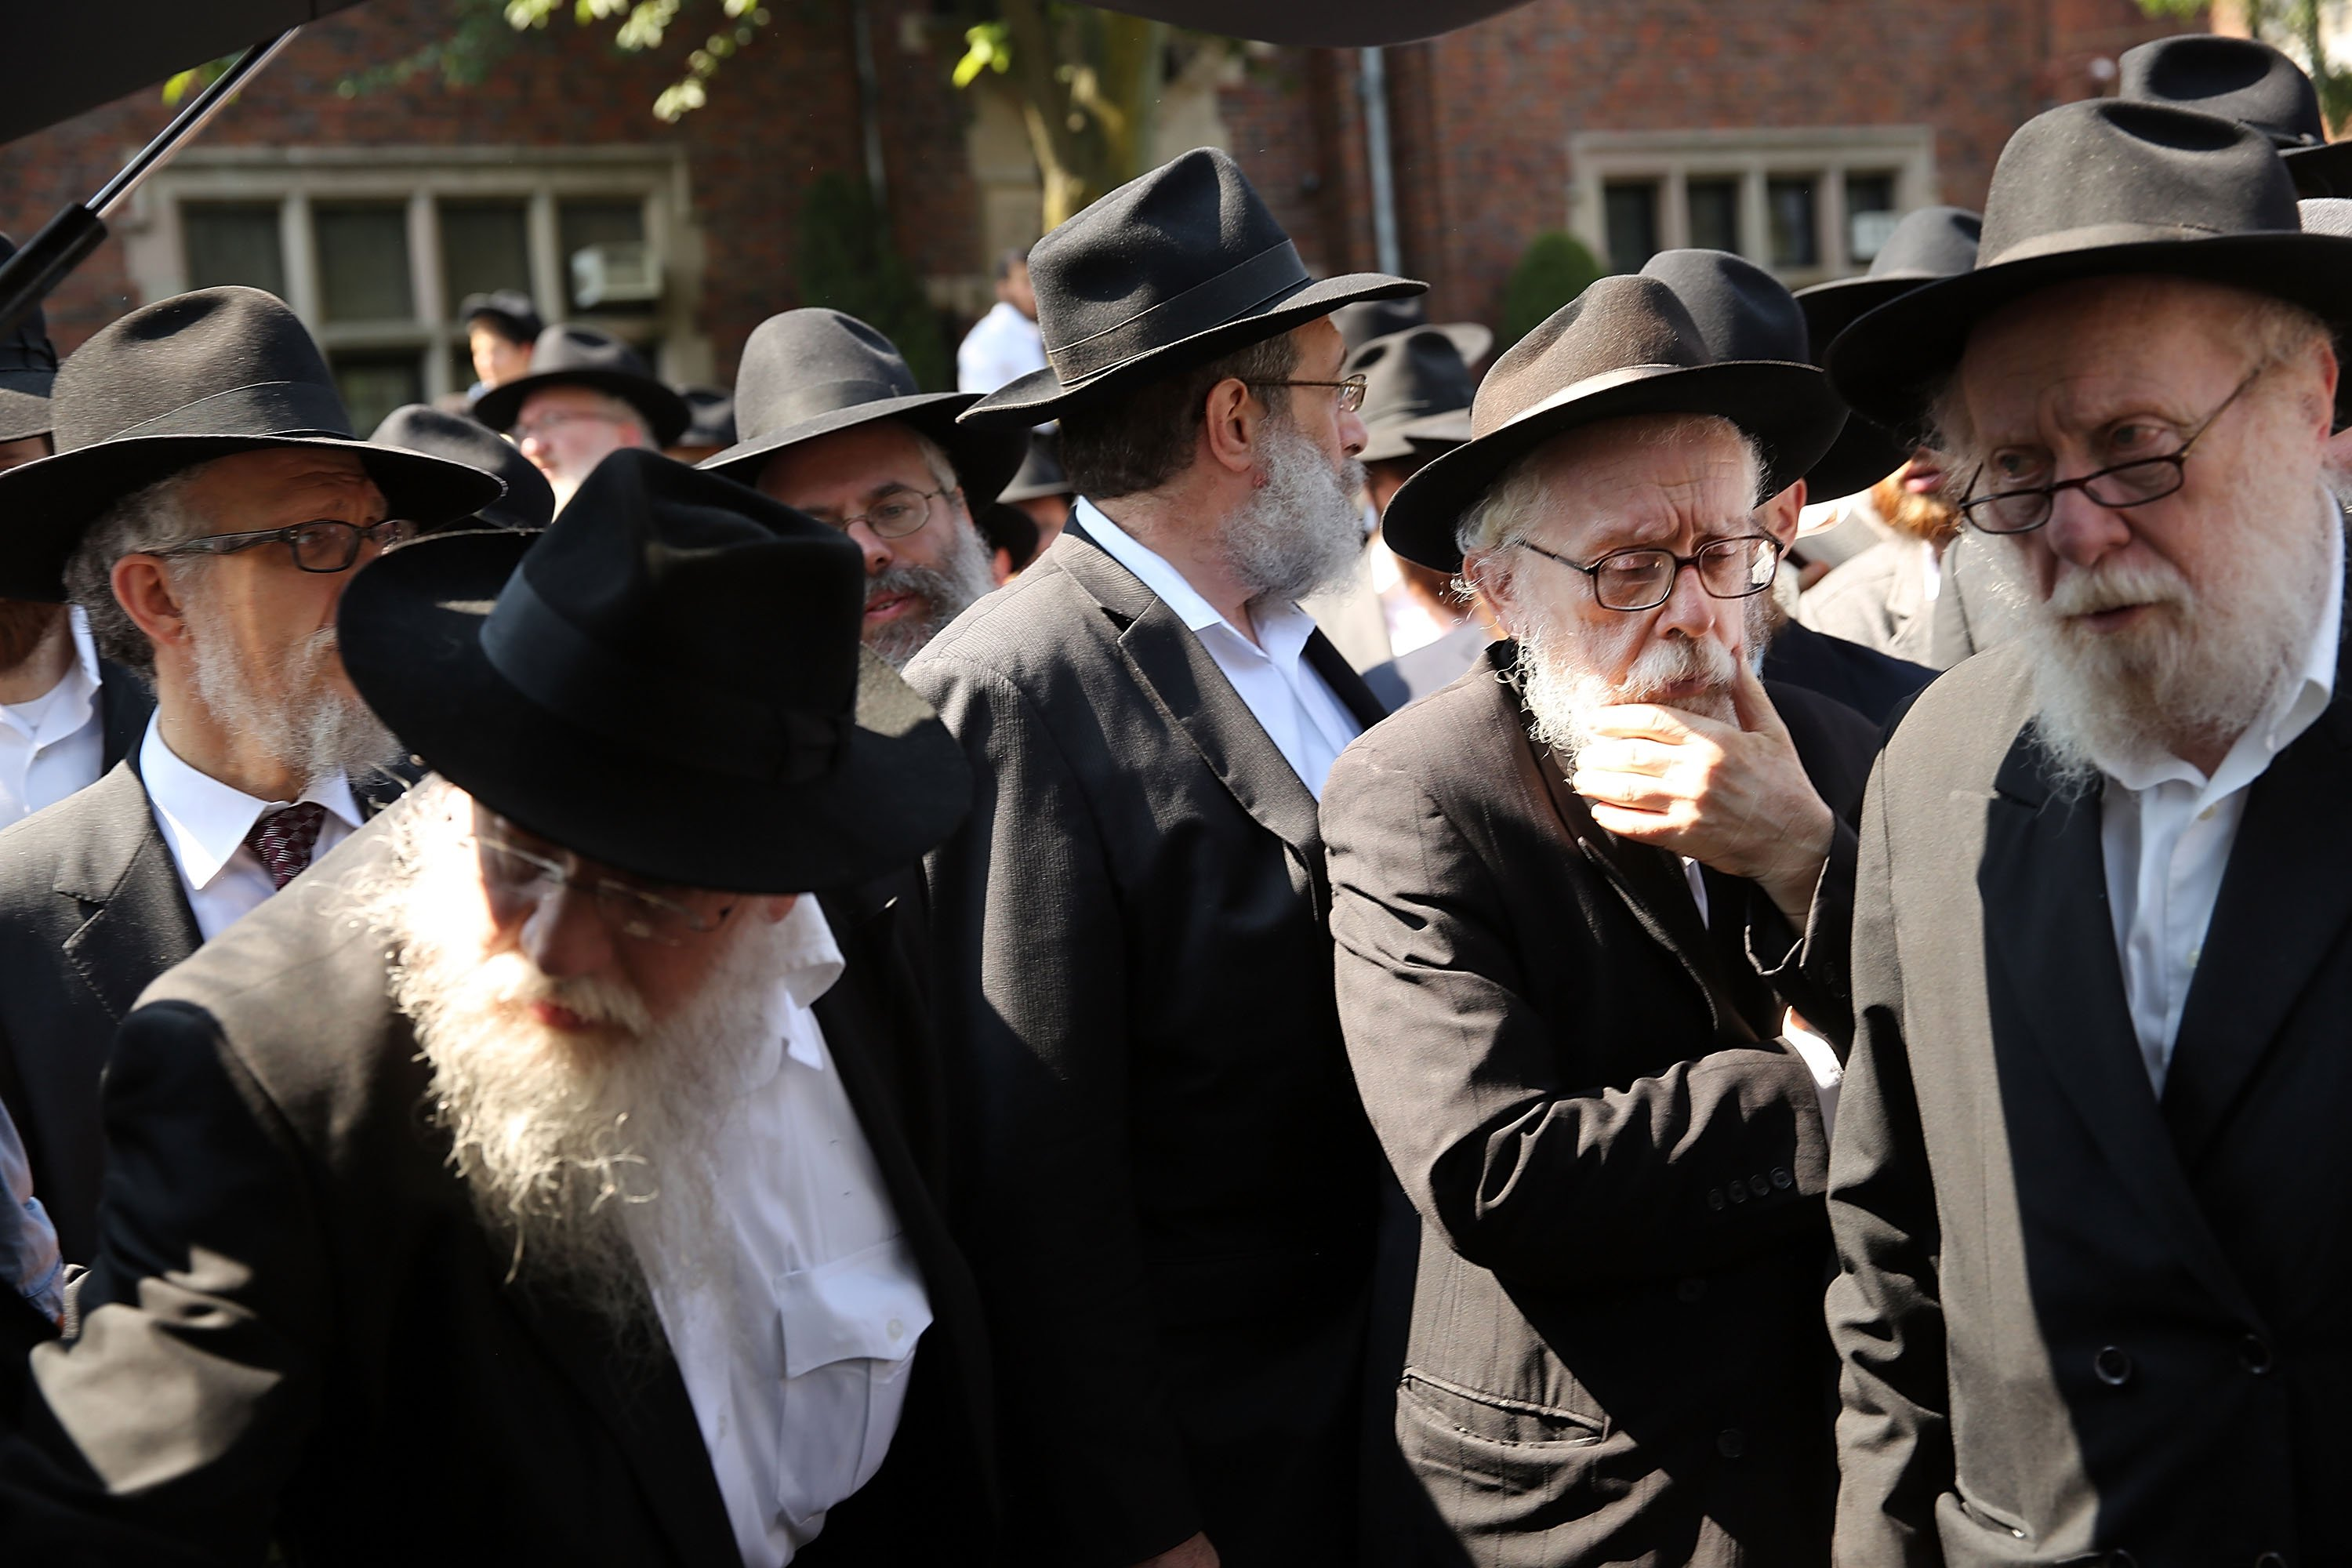 Mourners follow a hearse outside the Chabad-Lubavitch headquarters for the funeral of Rabbi Joseph Raksin in the Brooklyn borough of New York City on Aug. 11, 2014.